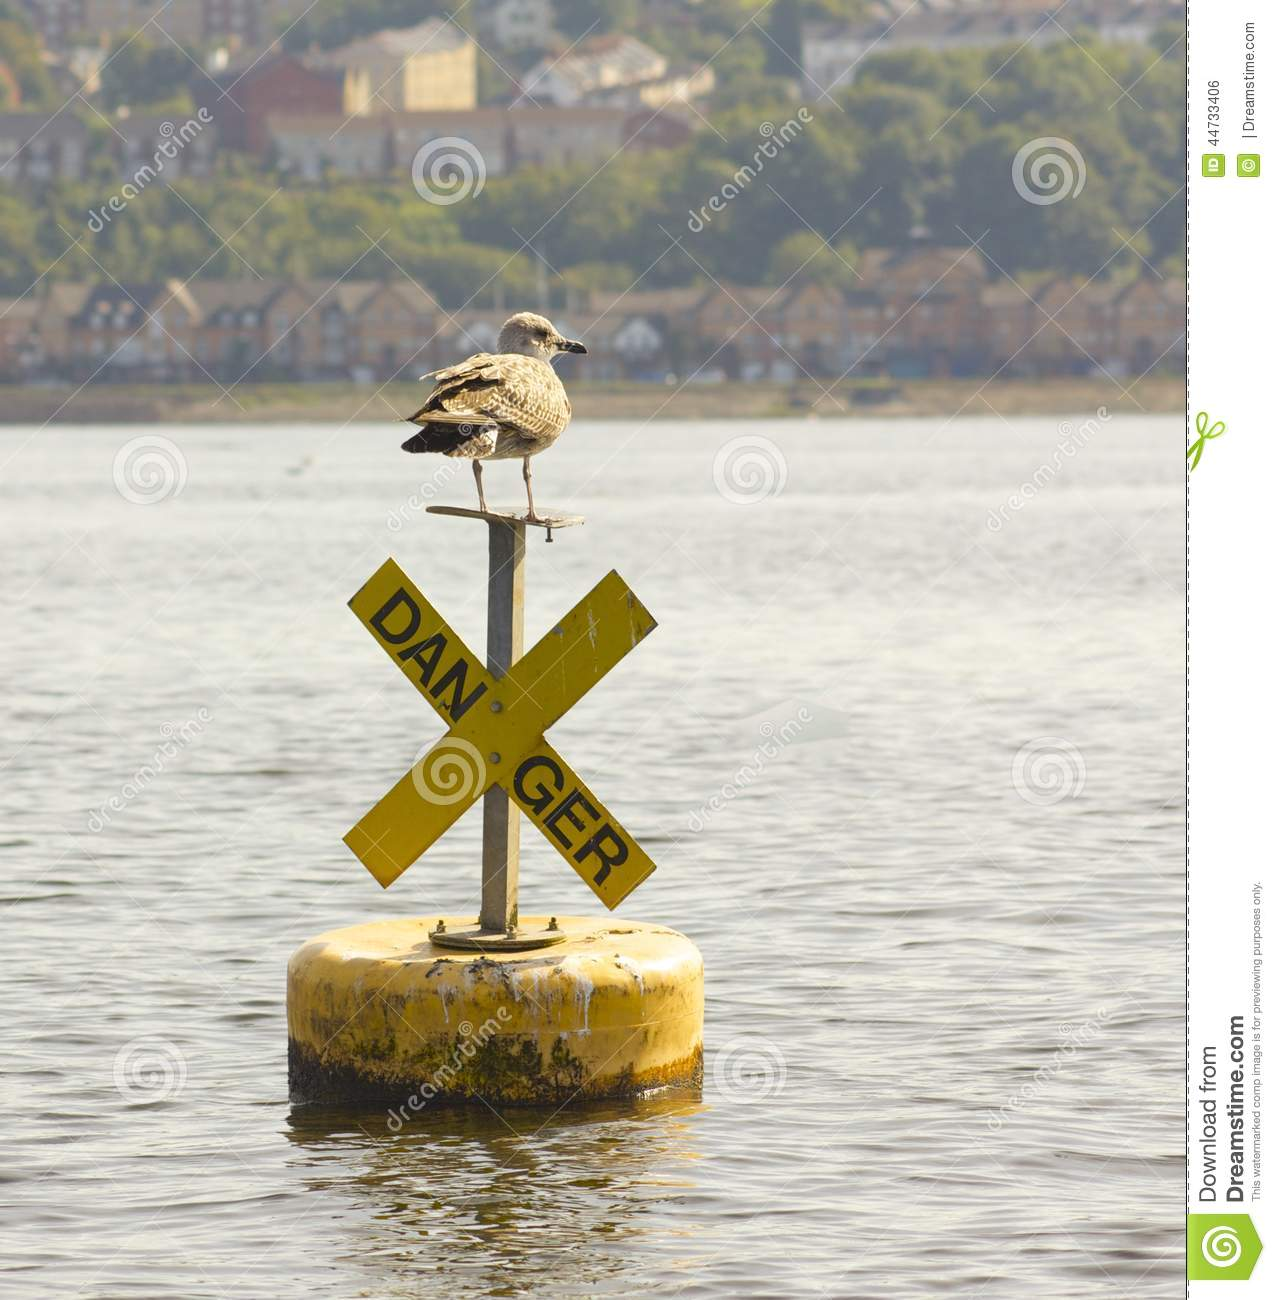 Fearless Bird Baby Seagull Danger Sign Stock Photo 44733406